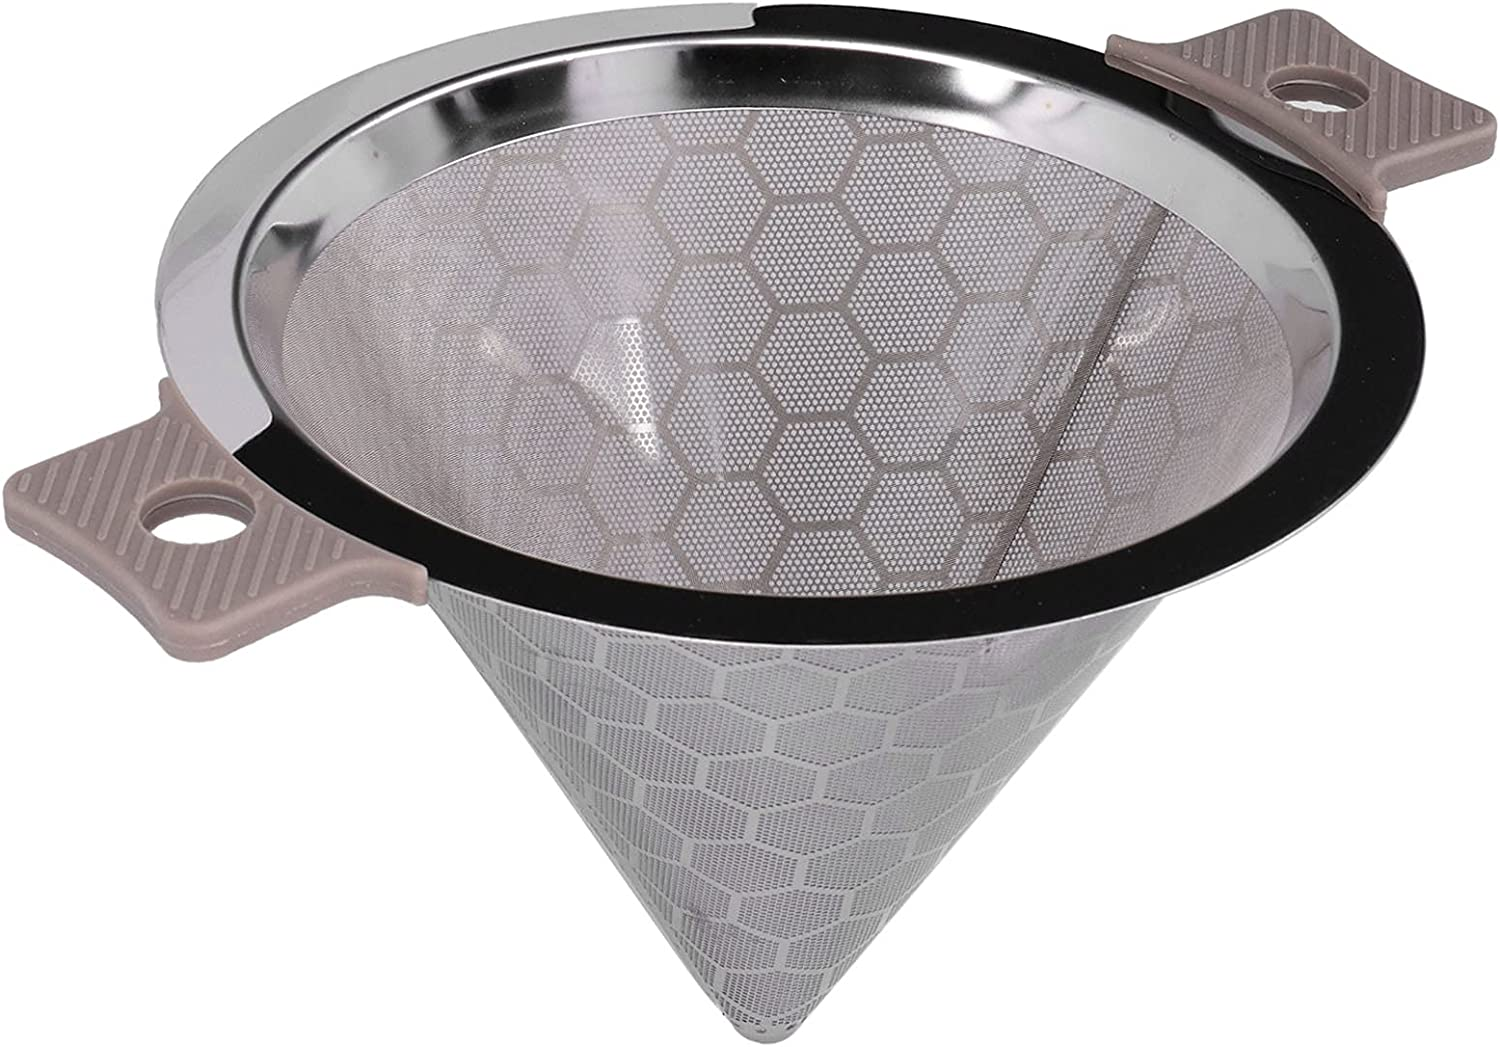 Tea Colorado Springs Mall Purchase Infuser Filter Not Be Evenl and Quickly Blocked Filting